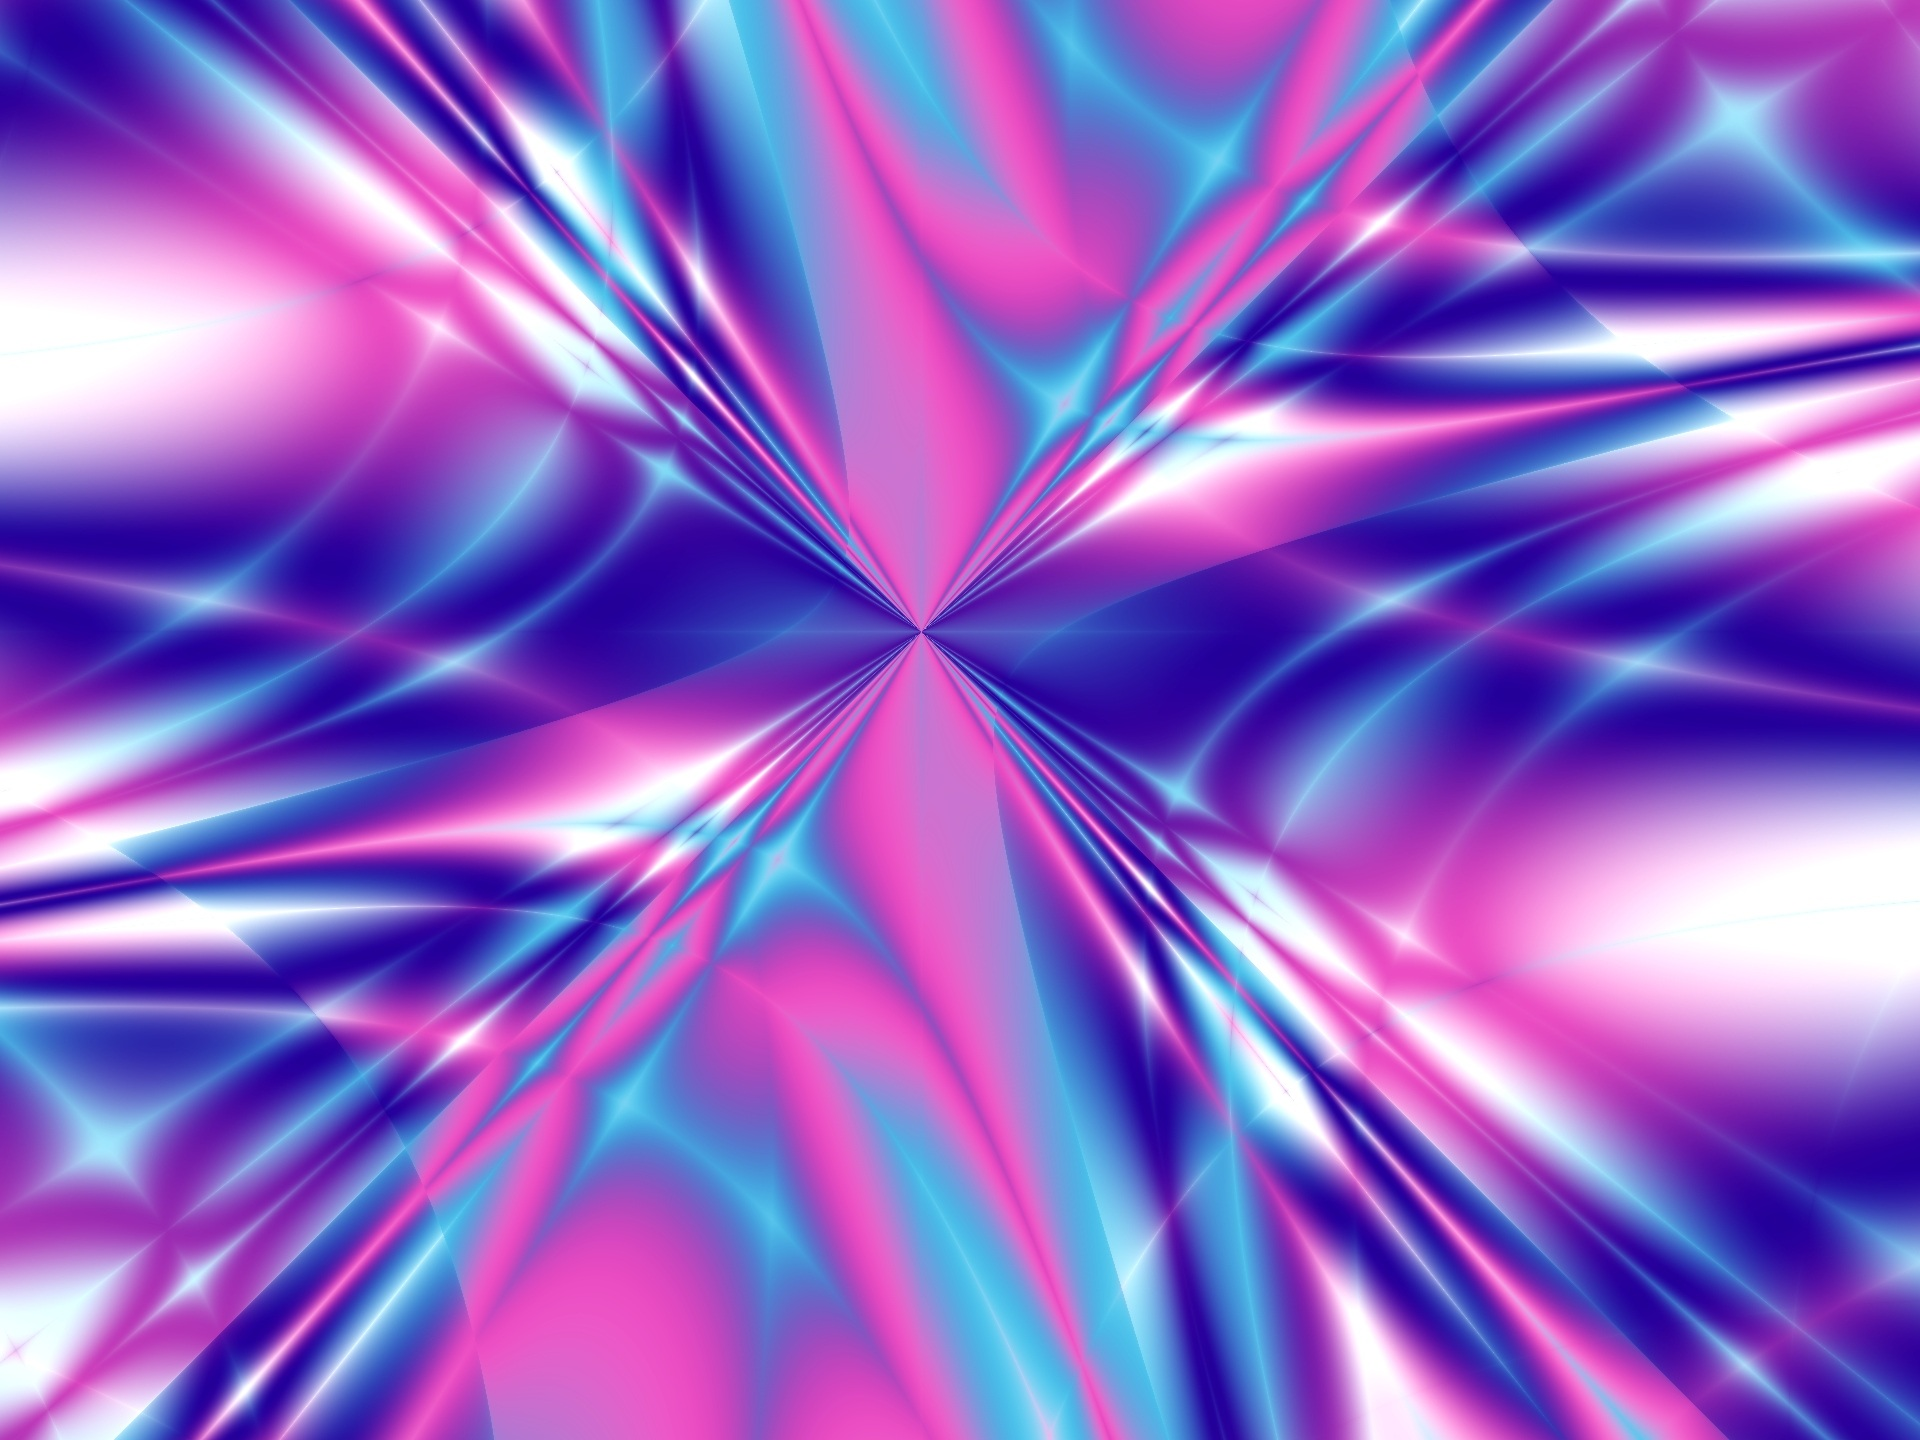 95395 download wallpaper Abstract, Lines, Pink screensavers and pictures for free